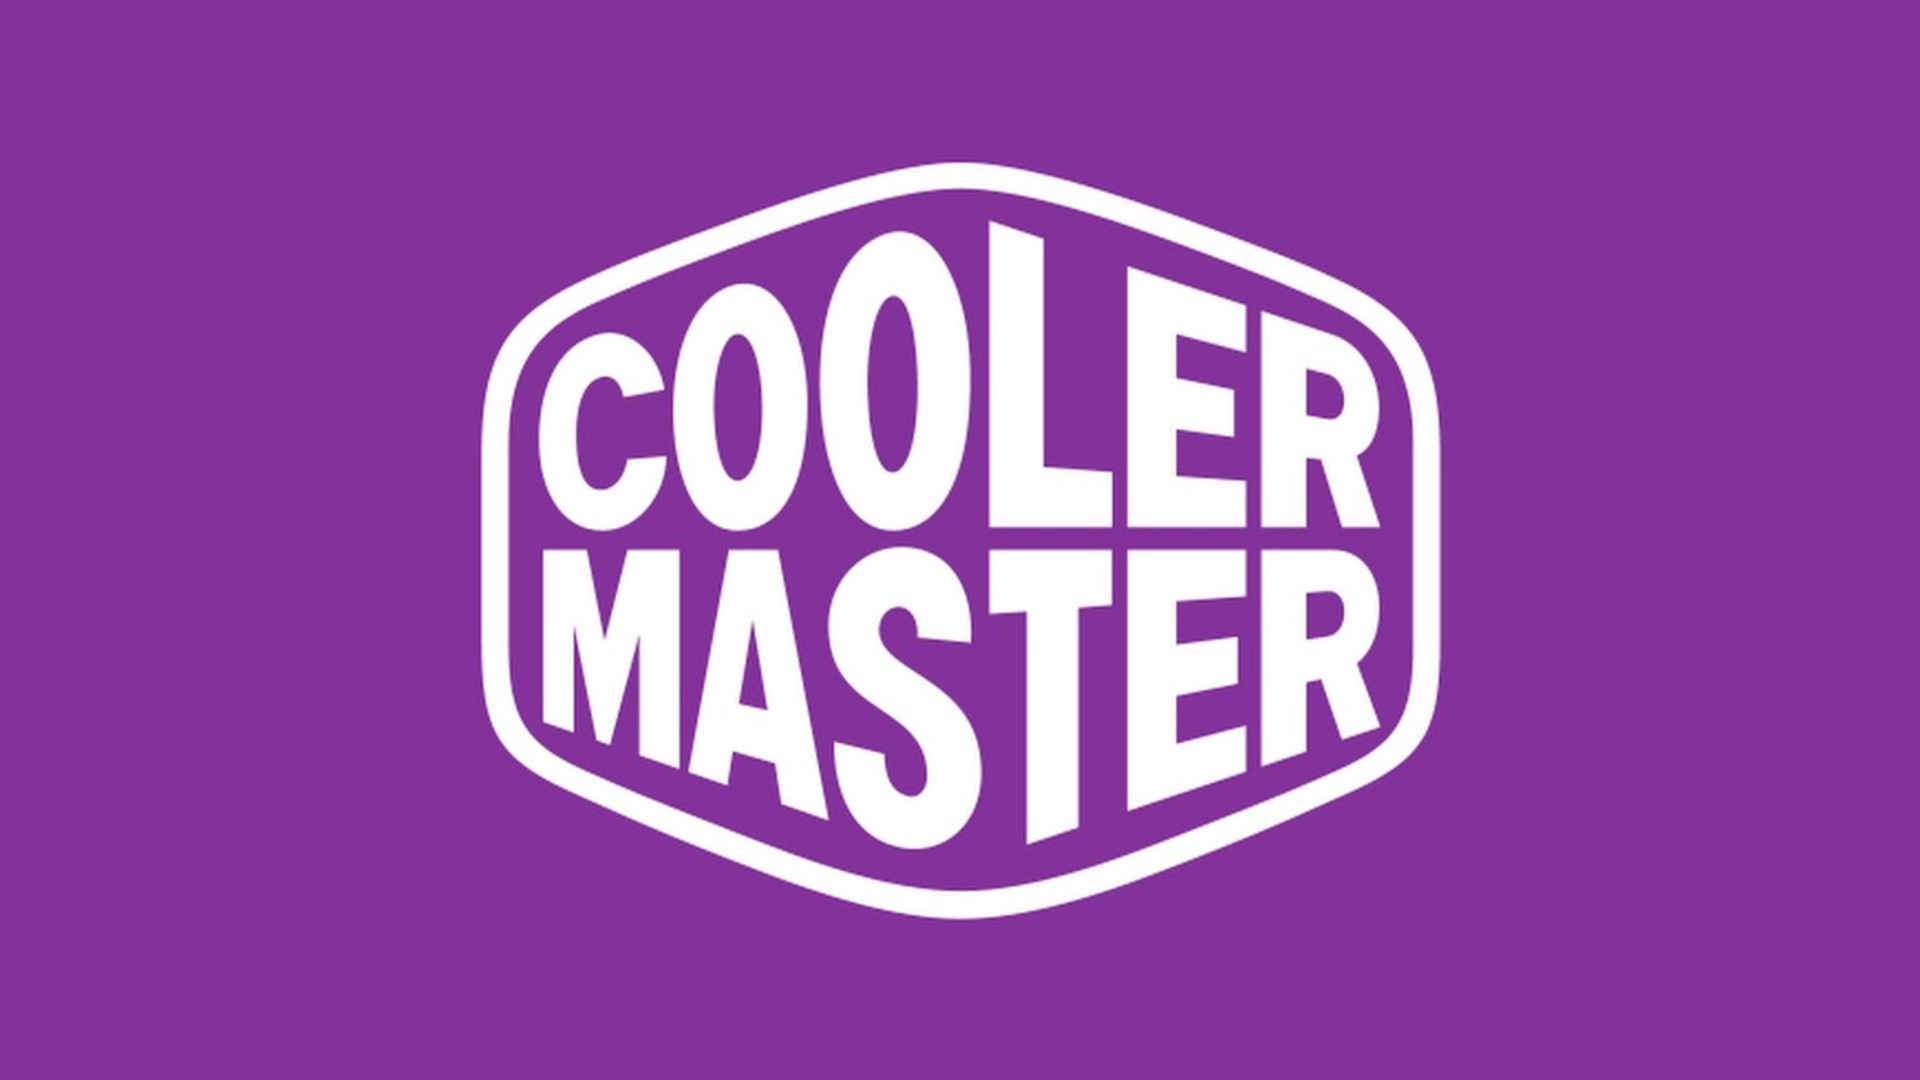 Cooler Master wants to charge you $2,000 for a vibrating gaming chair